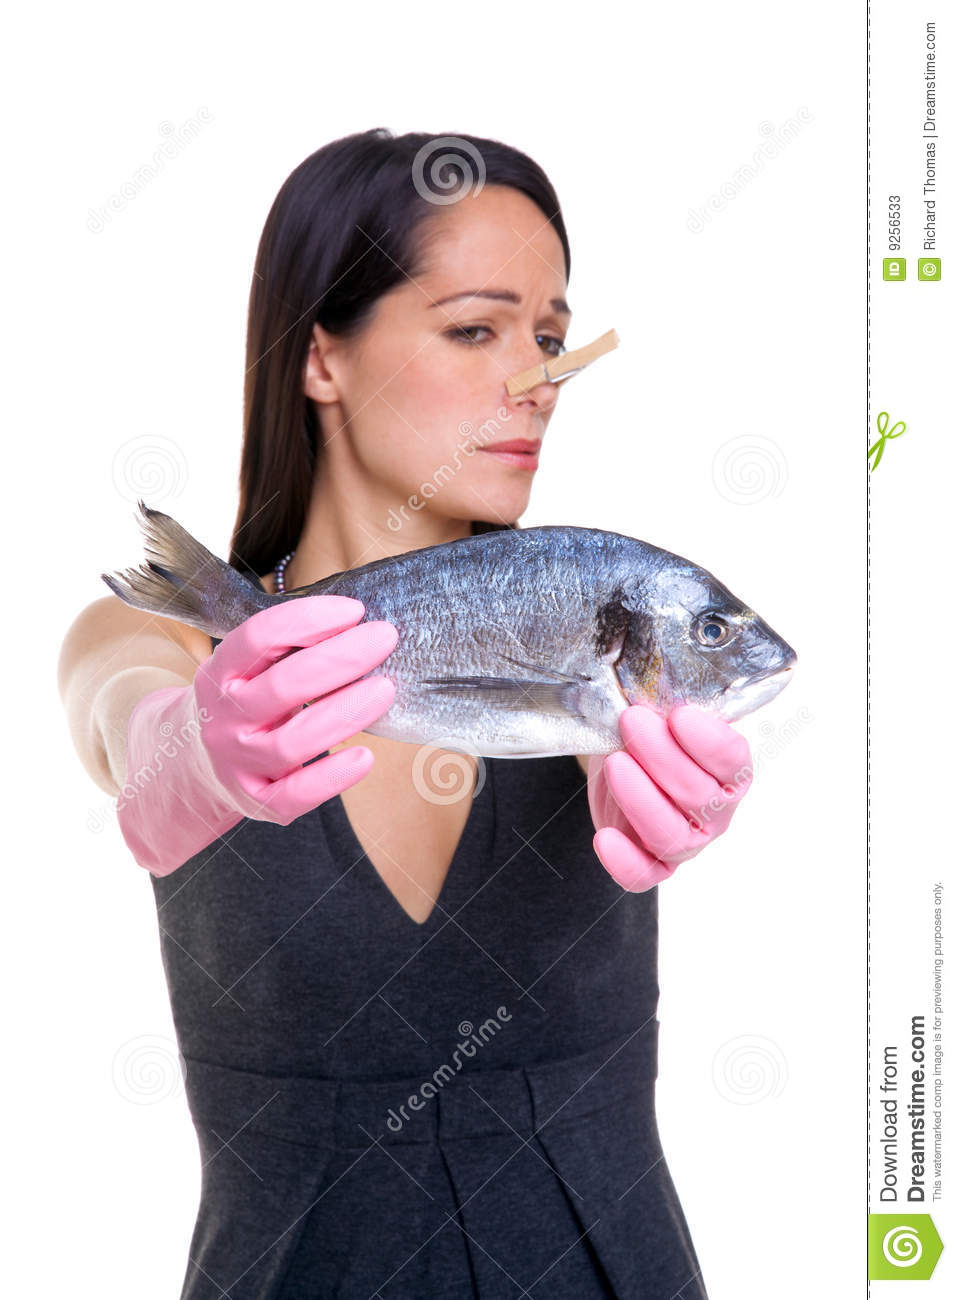 Like: Woman Who Doesn't Like Fish Stock Image